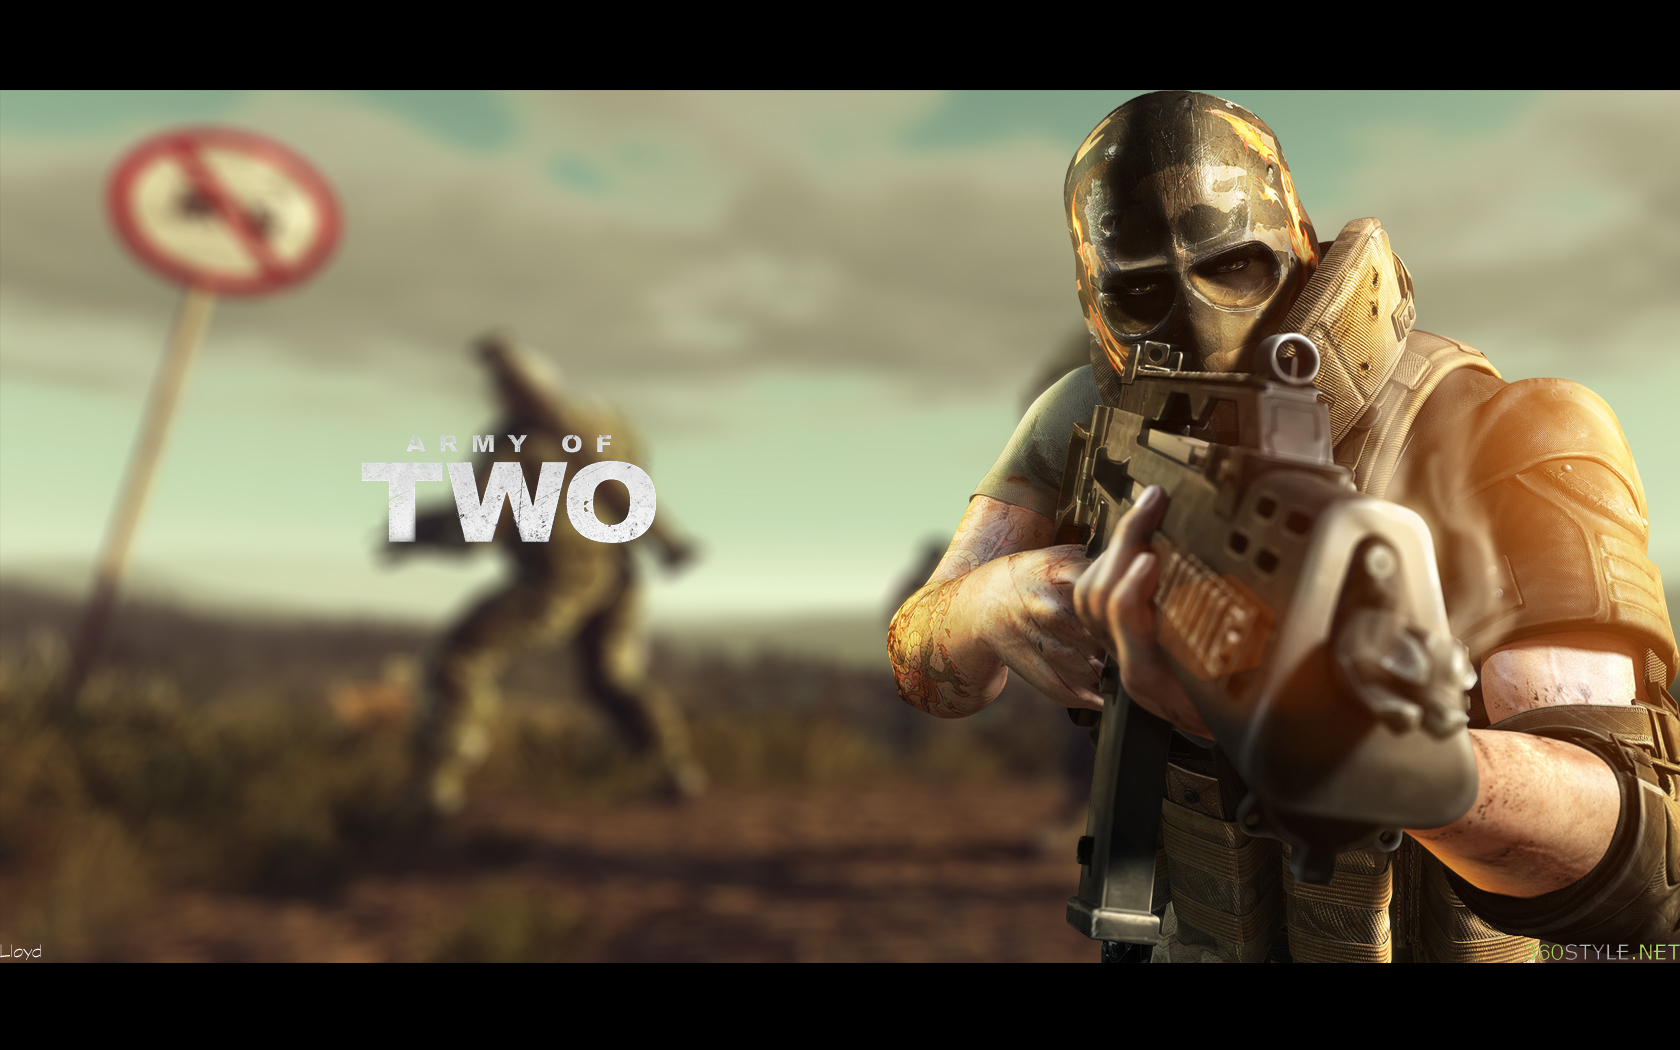 Army of two by HD Wallpaper